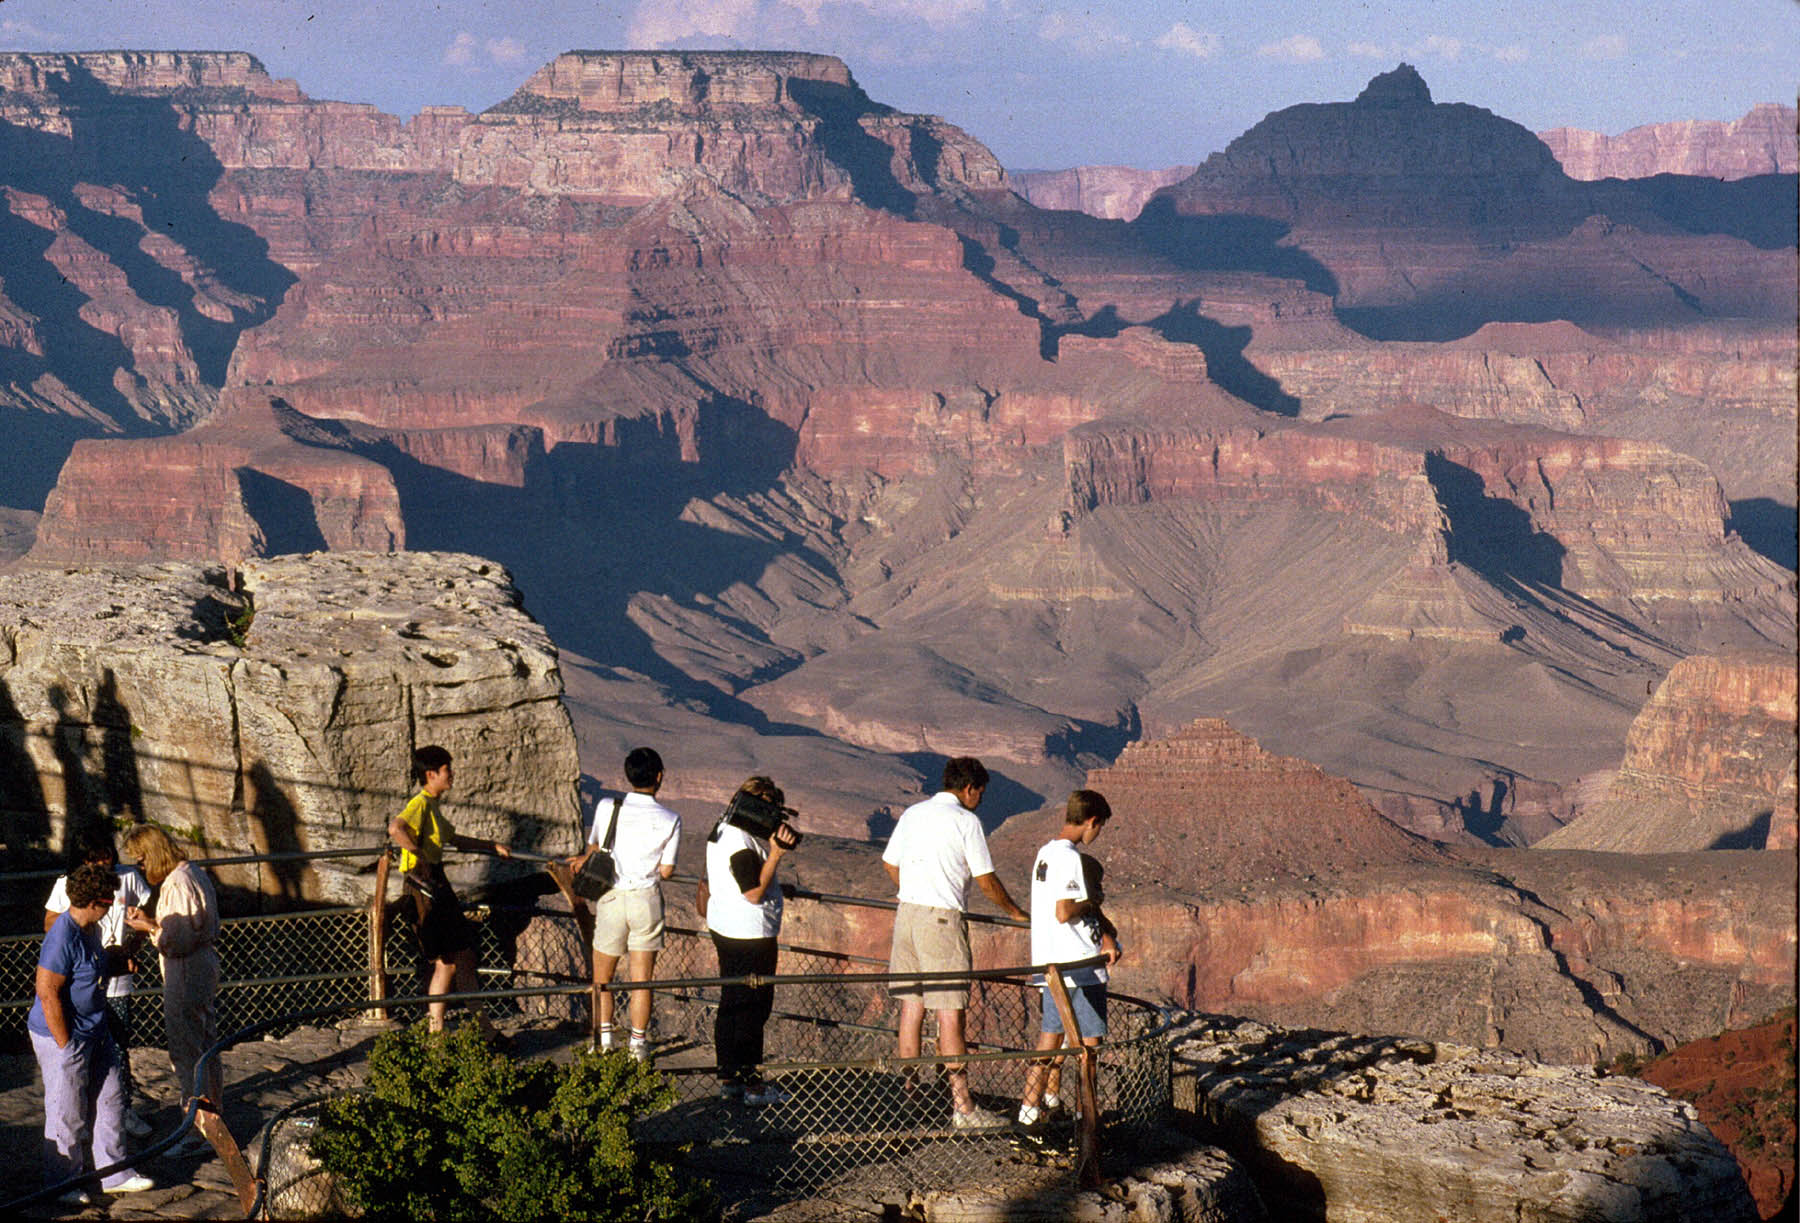 Grand Canyon clipart national parks Grand Point Canyon South Free